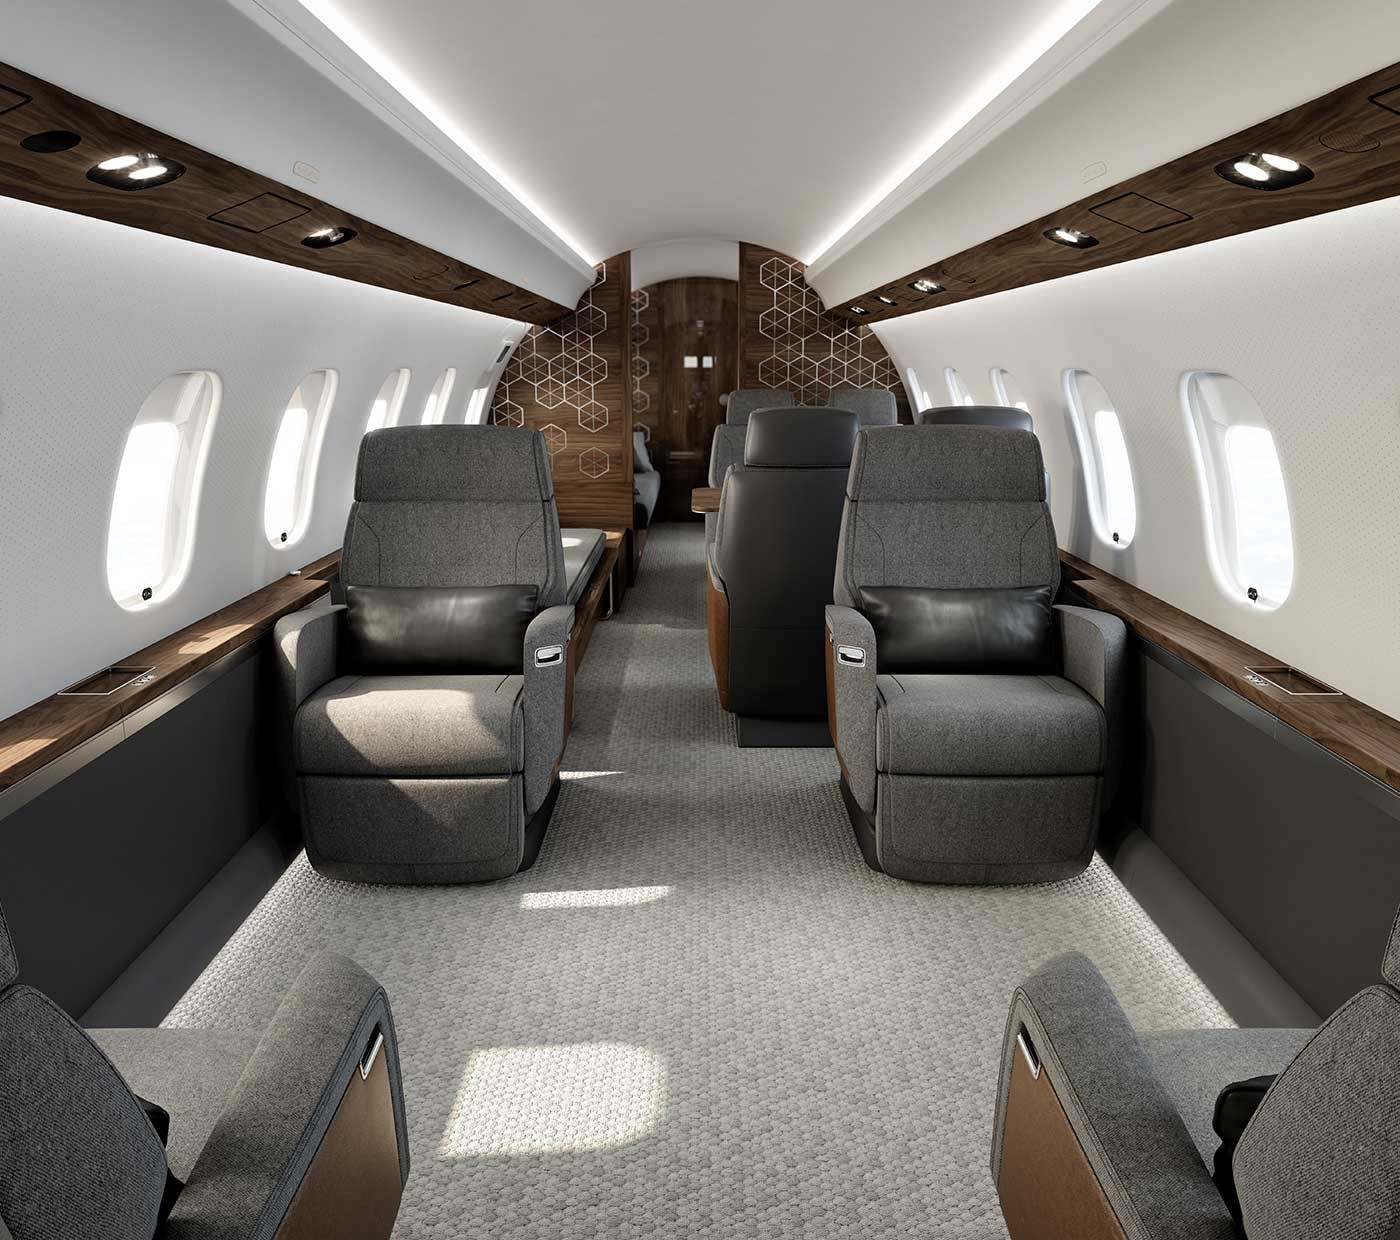 Global 6500 largest cabin